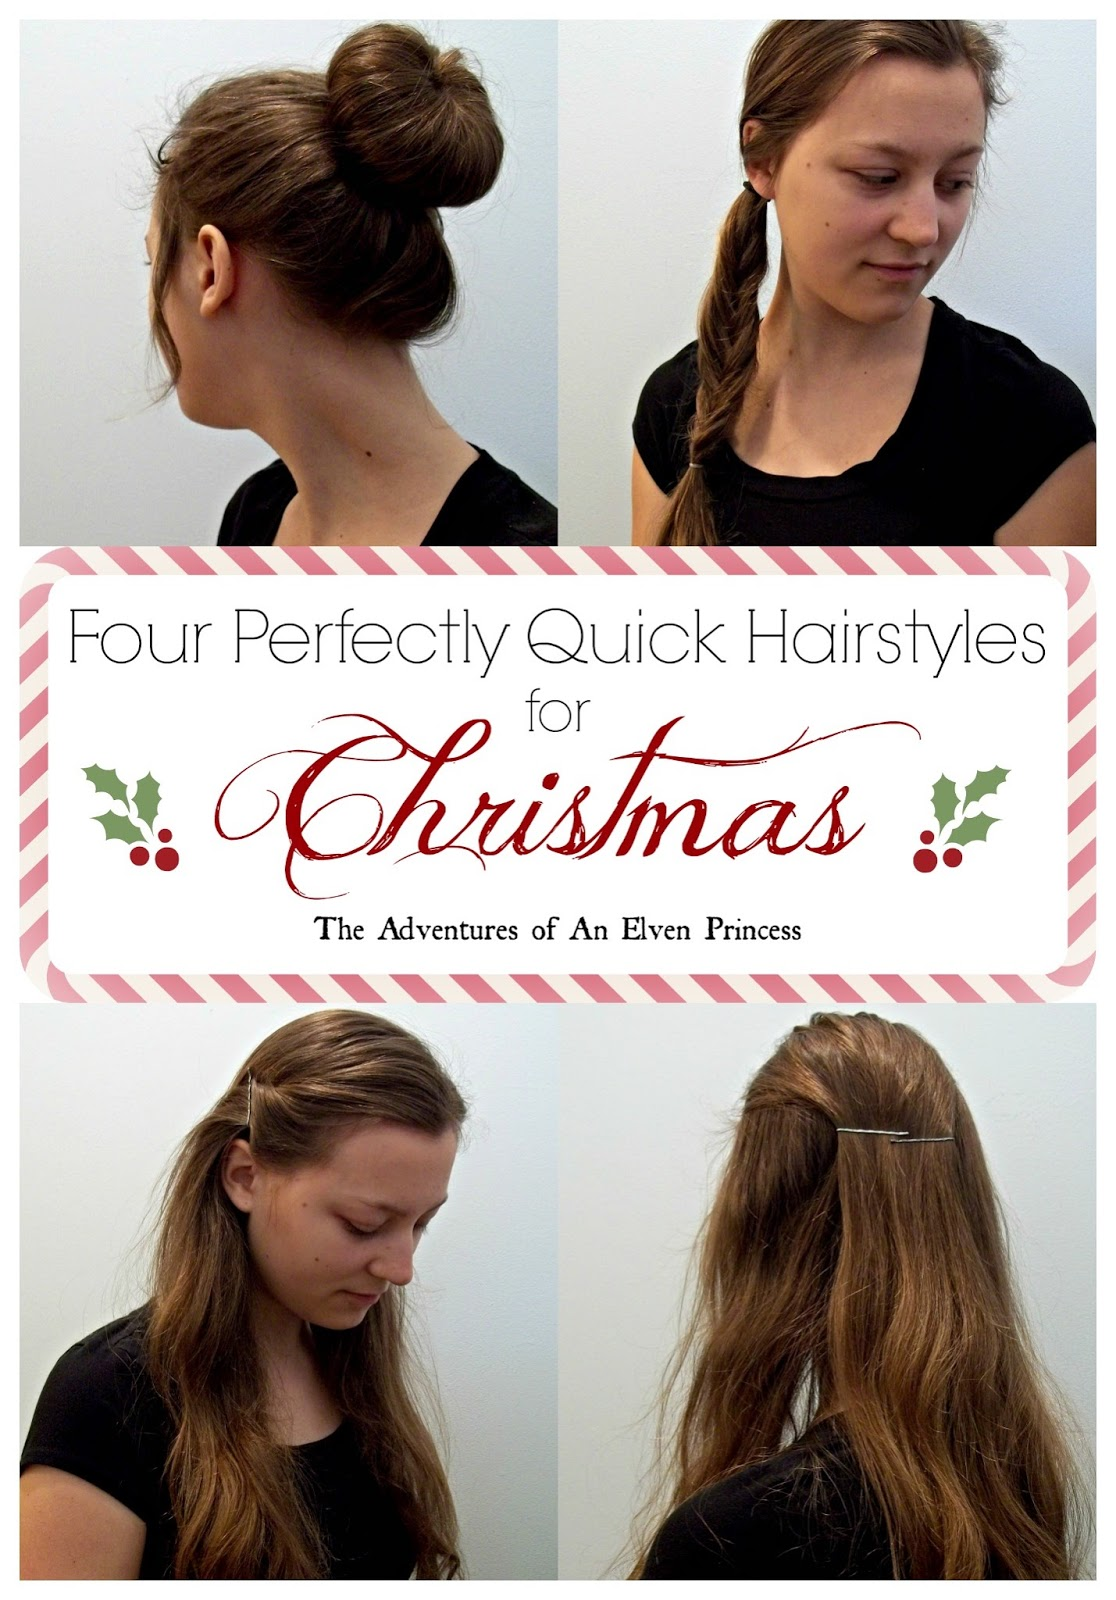 4 Perfectly Quick Hairstyles For Christmas